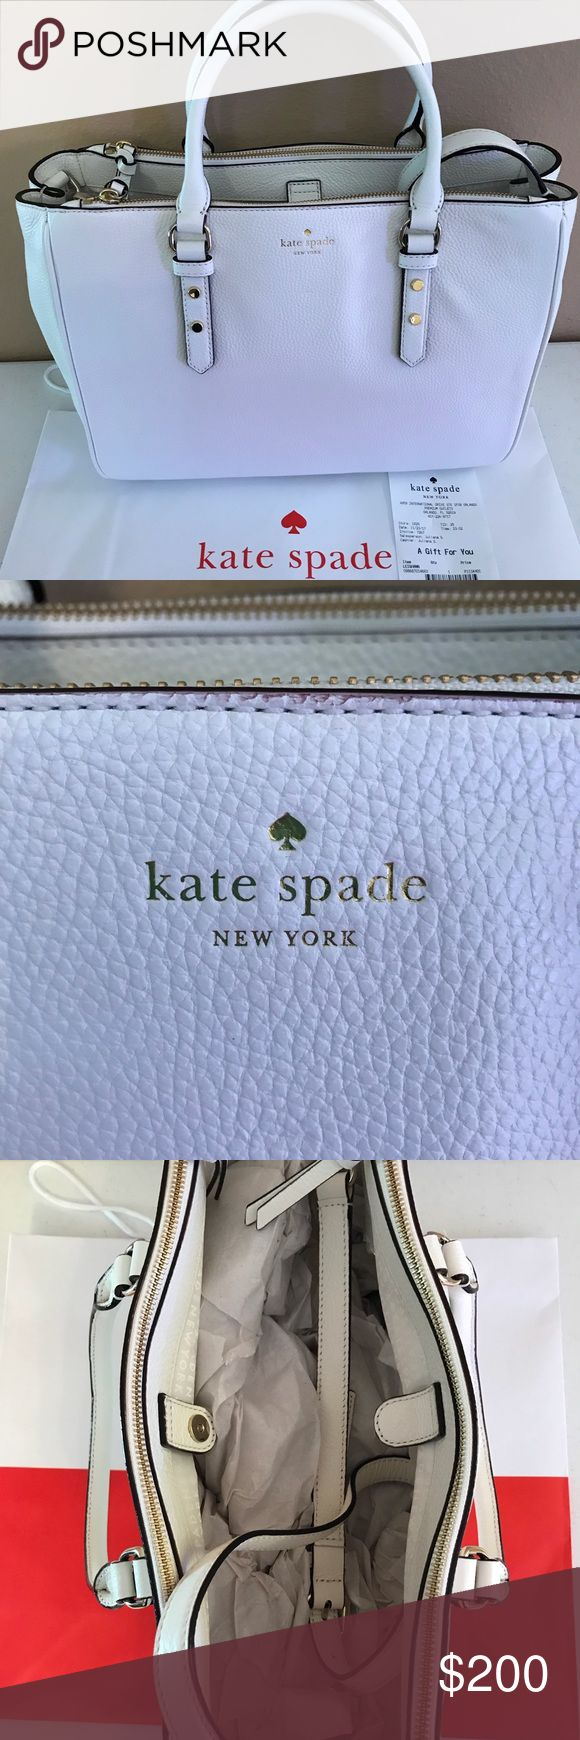 NWT Kate Spade Mulberry Street Leighann - Cement Price brand new in store: $429. Brand new with tags and gift receipt as proof of purchase and authenticity. Includes optional shoulder strap. Beautiful large bag to carry all your daily needs with multiple smaller pouches. This would be a great carry-on/travel bag. Perfect cream color to go with everything in your closet or on your travels!  Approx. dimensions: 14 in (L) x 10.5 in (H) x 6.25 in (W) kate spade Bags Totes